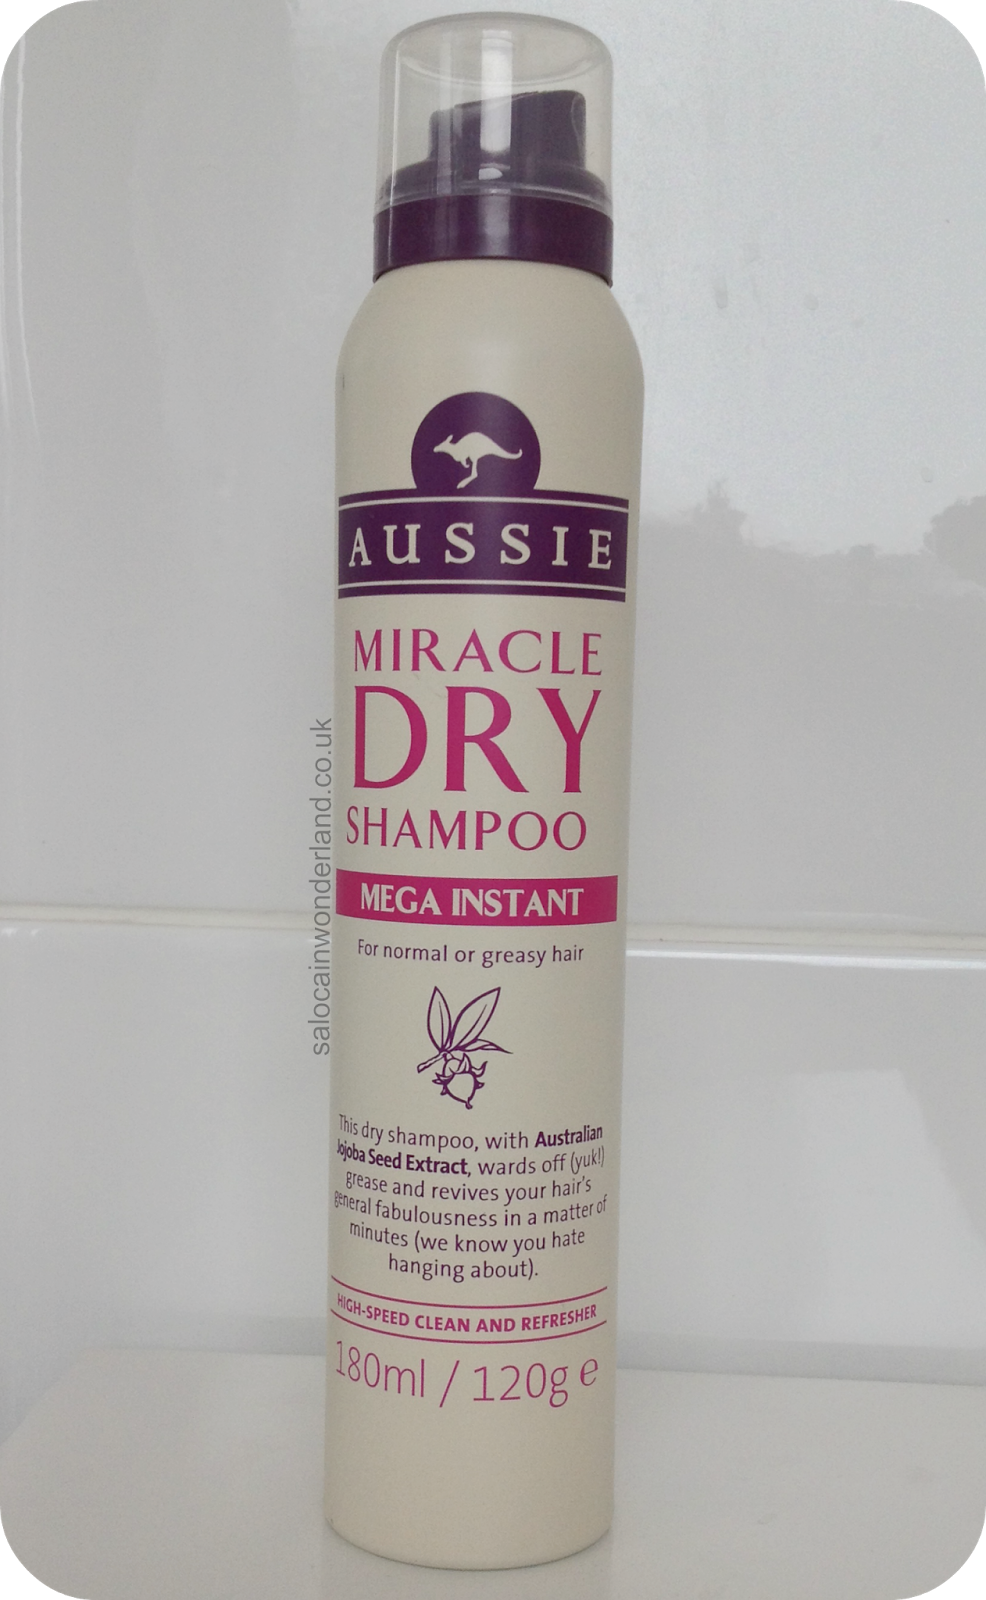 August 2014 Favourites Paraben free products, Dry